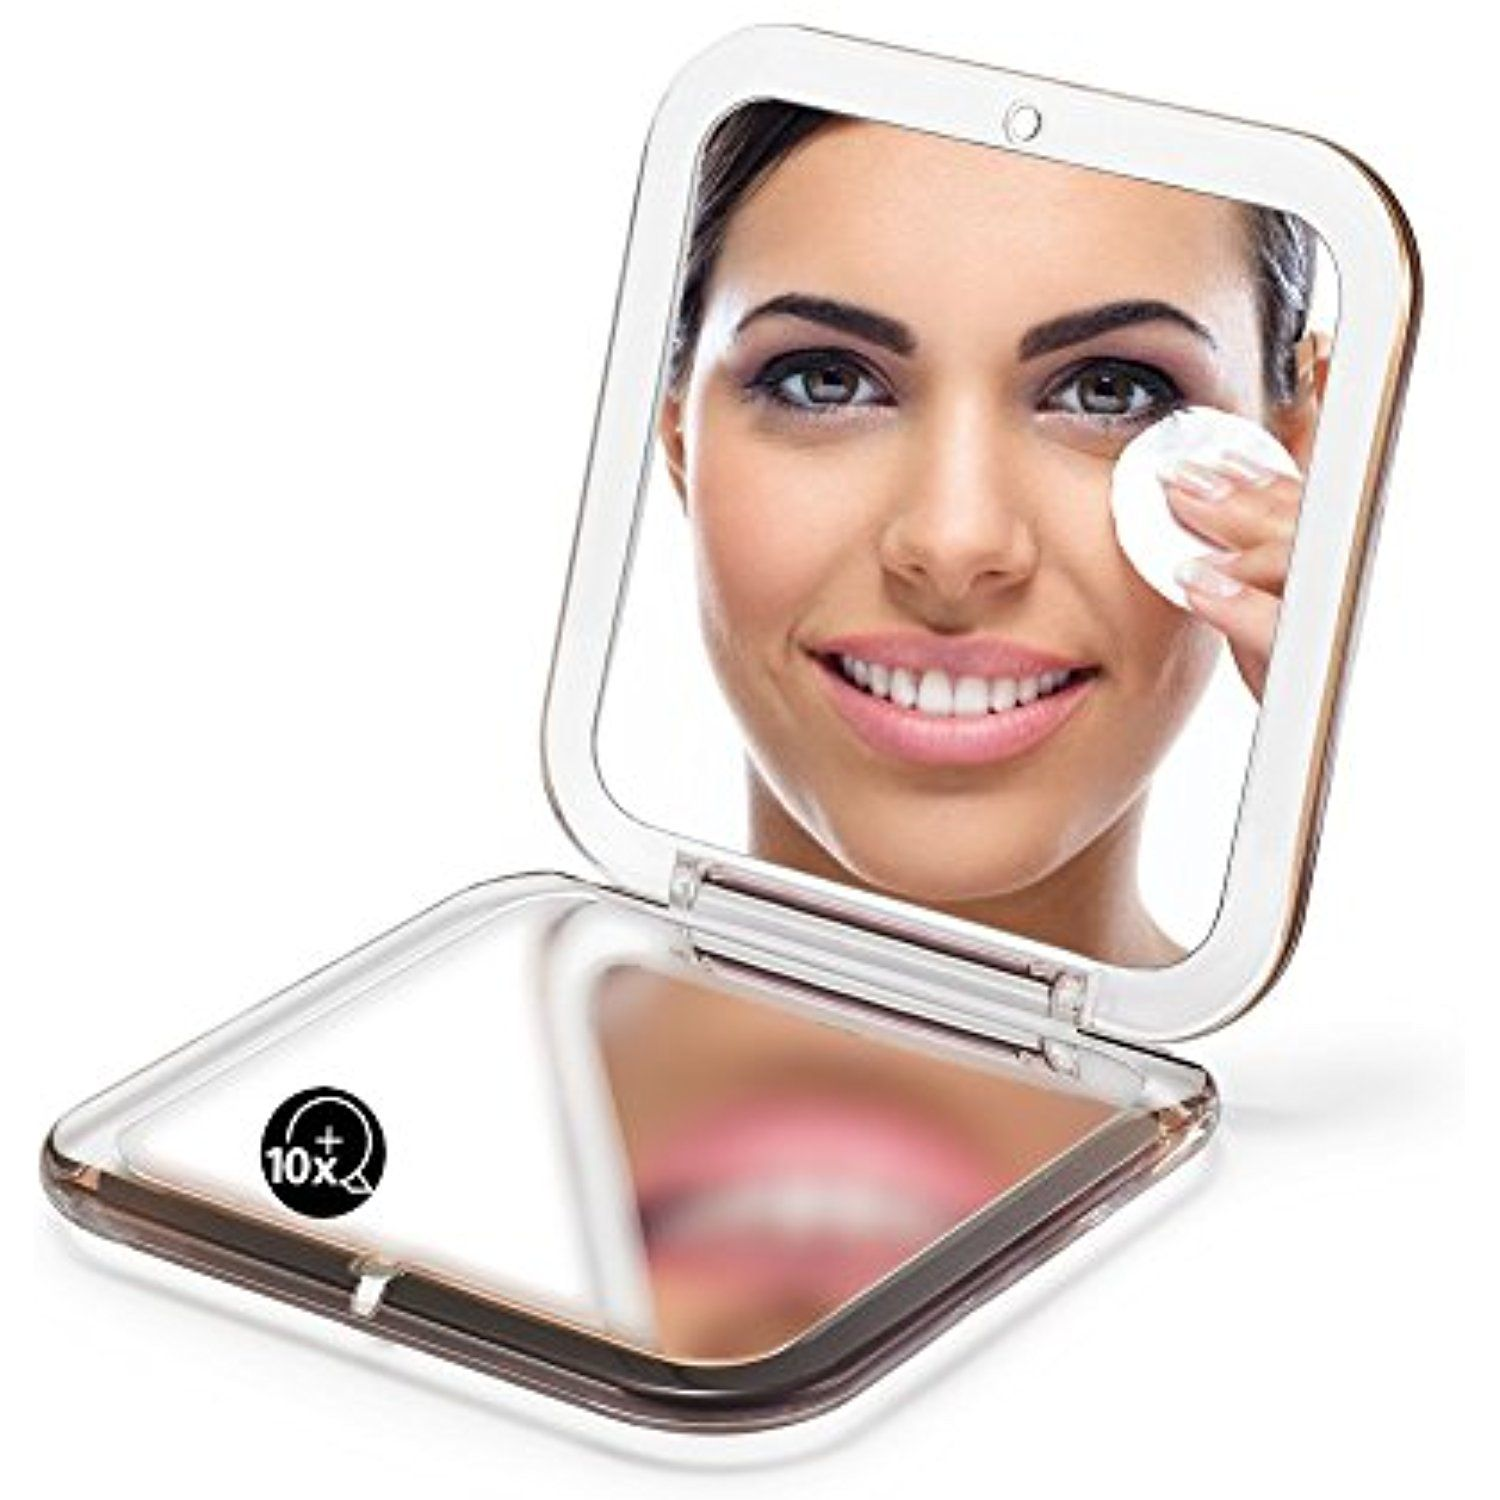 Omiro Folding Compact Mirror 1x 10x Magnification 3a A Pocket Size Square Hand Mirror For Travel Makeup G Travel Makeup Mirror Travel Makeup Compact Mirror